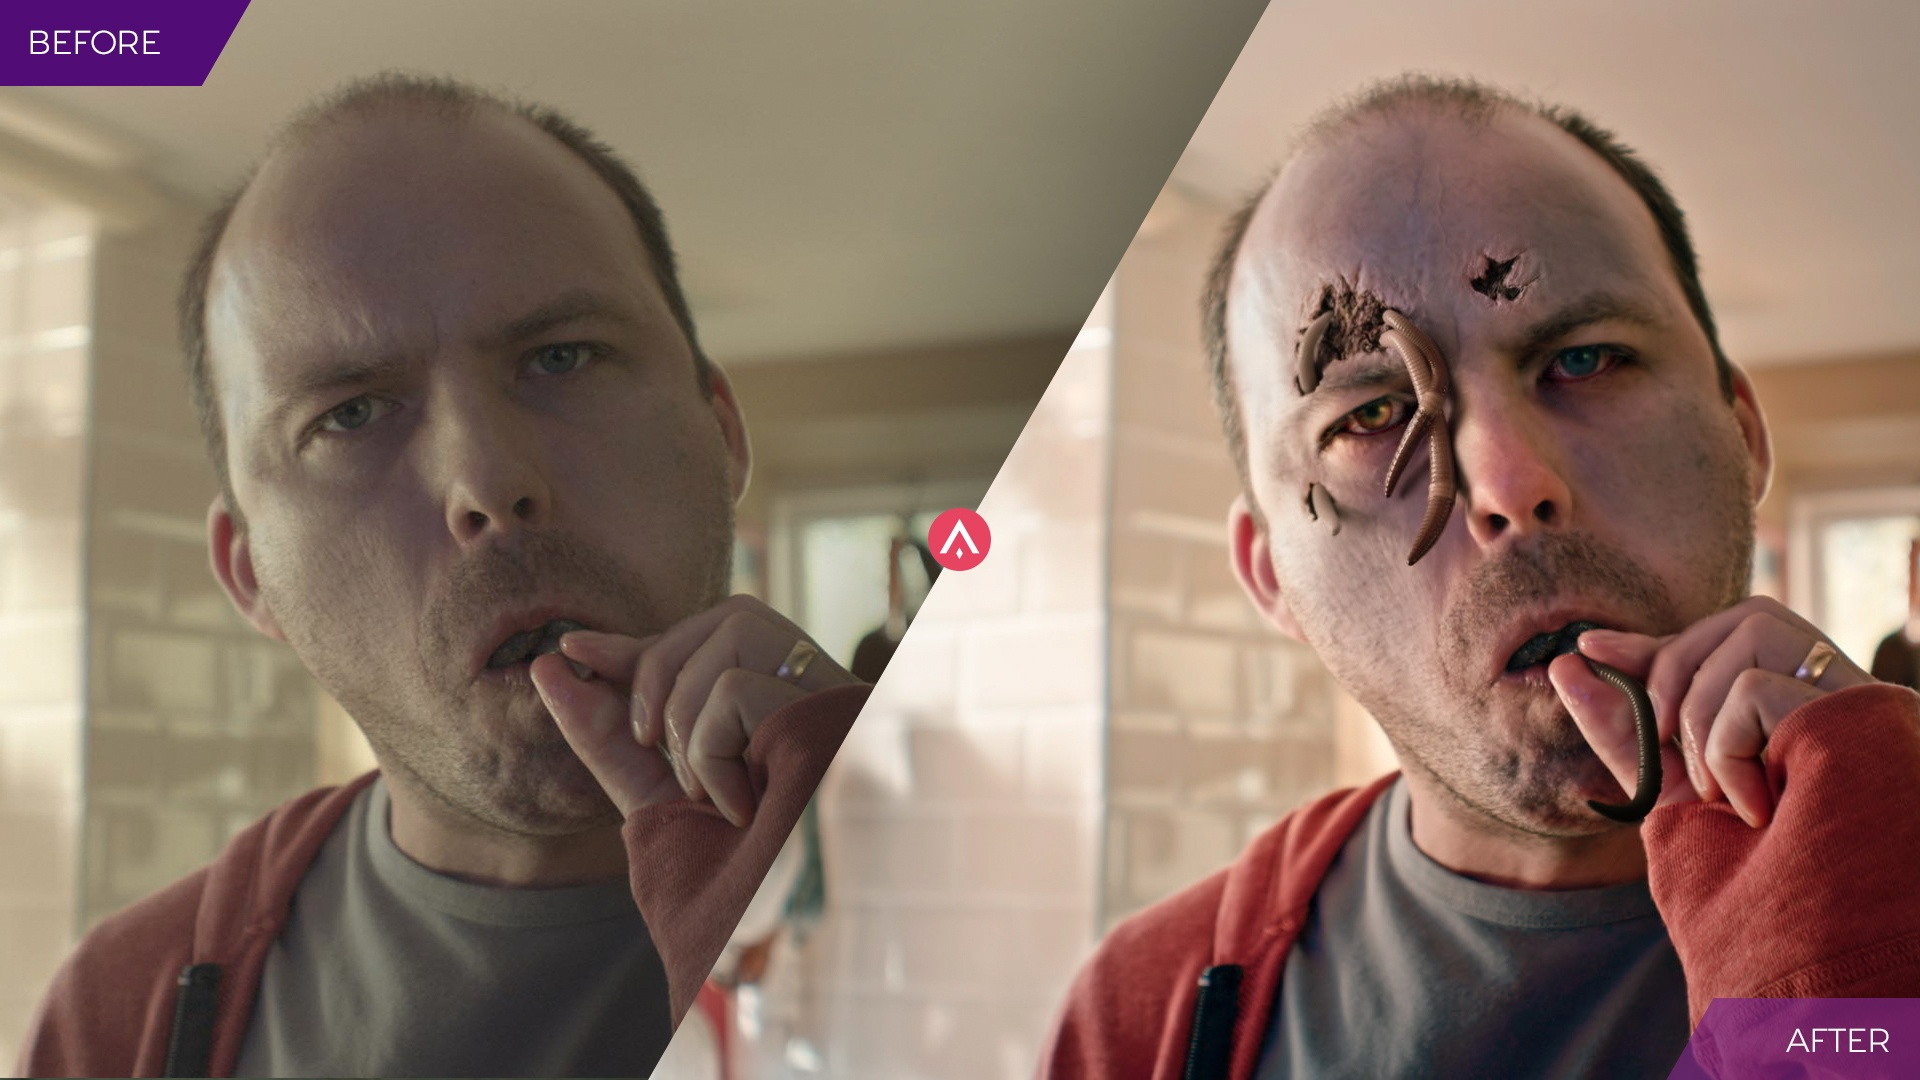 'Before and After' visual effects image of a zombie with worms coming out of his forehead and mouth